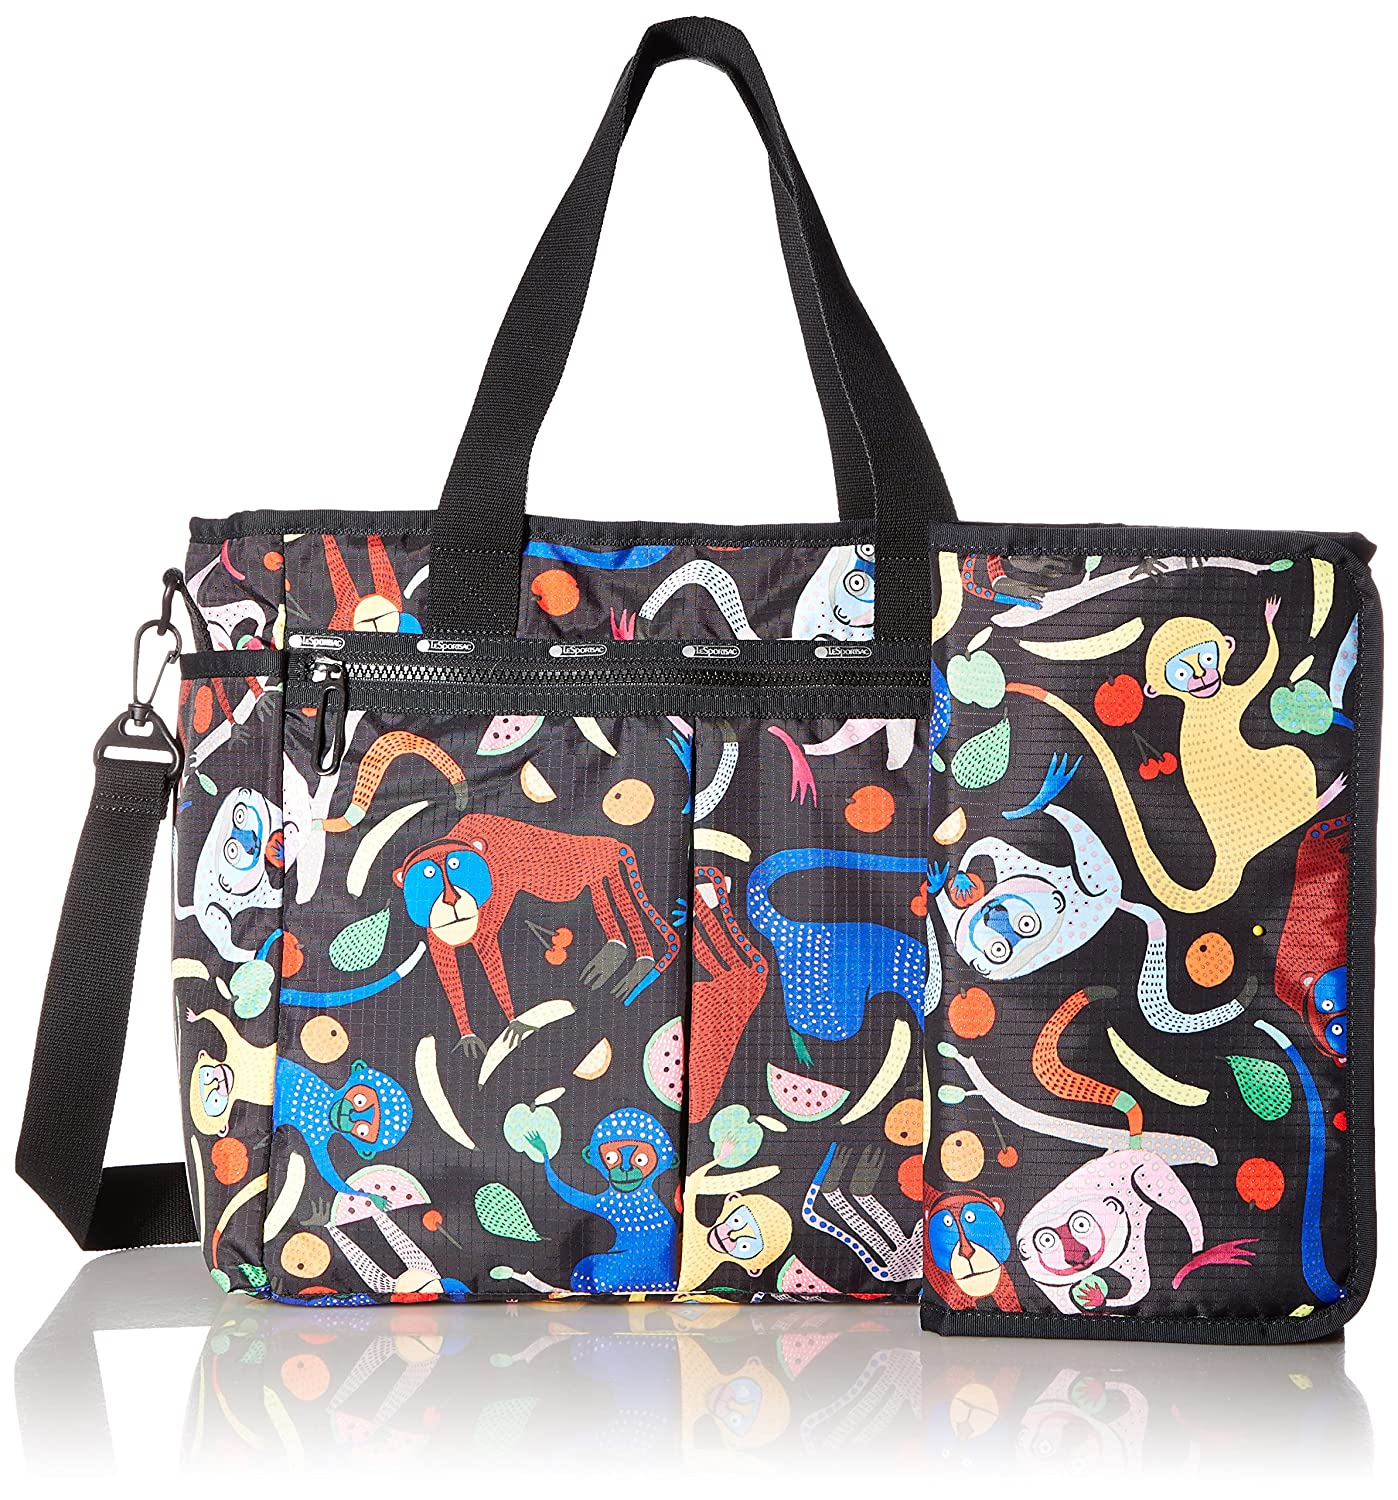 7a5bc70e0 LeSportsac Women's Ryan Baby Tote, Monkey Around B: Amazon.ca: Luggage &  Bags